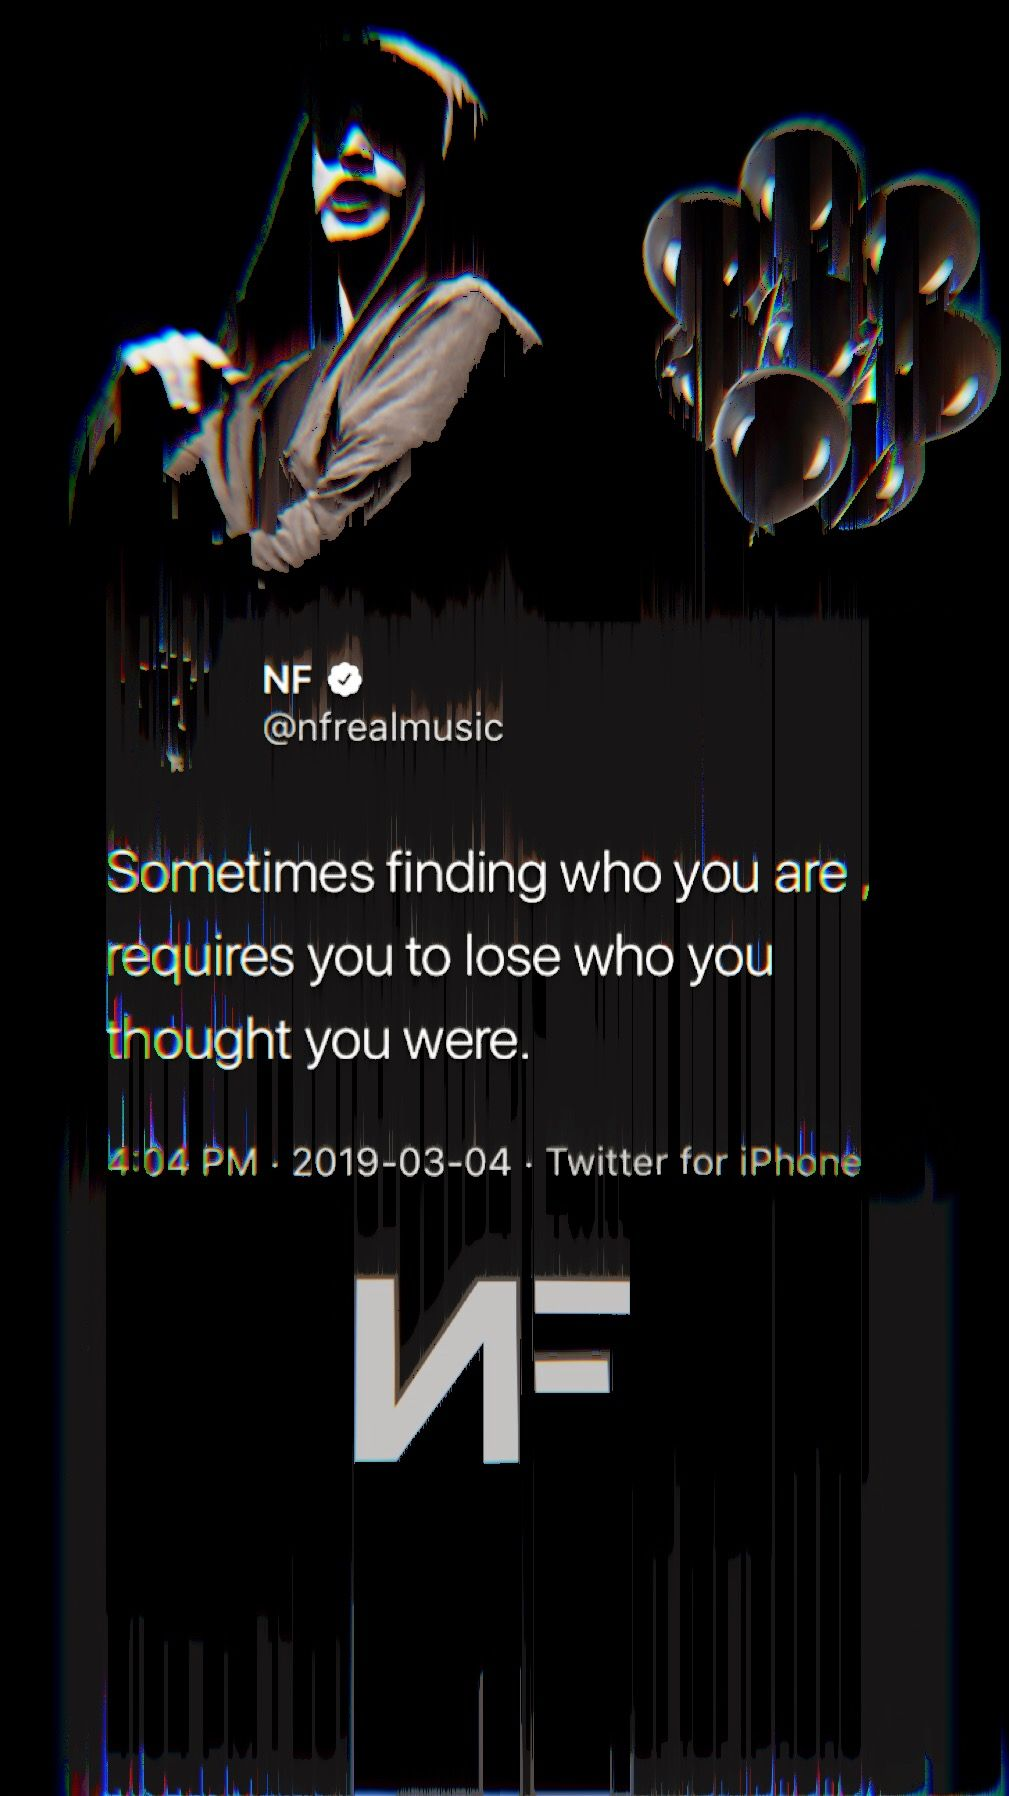 Made An Nf Wallpaper With Very Meaningful Tweet Nf Lyrics Nf Quotes Nf Real Music